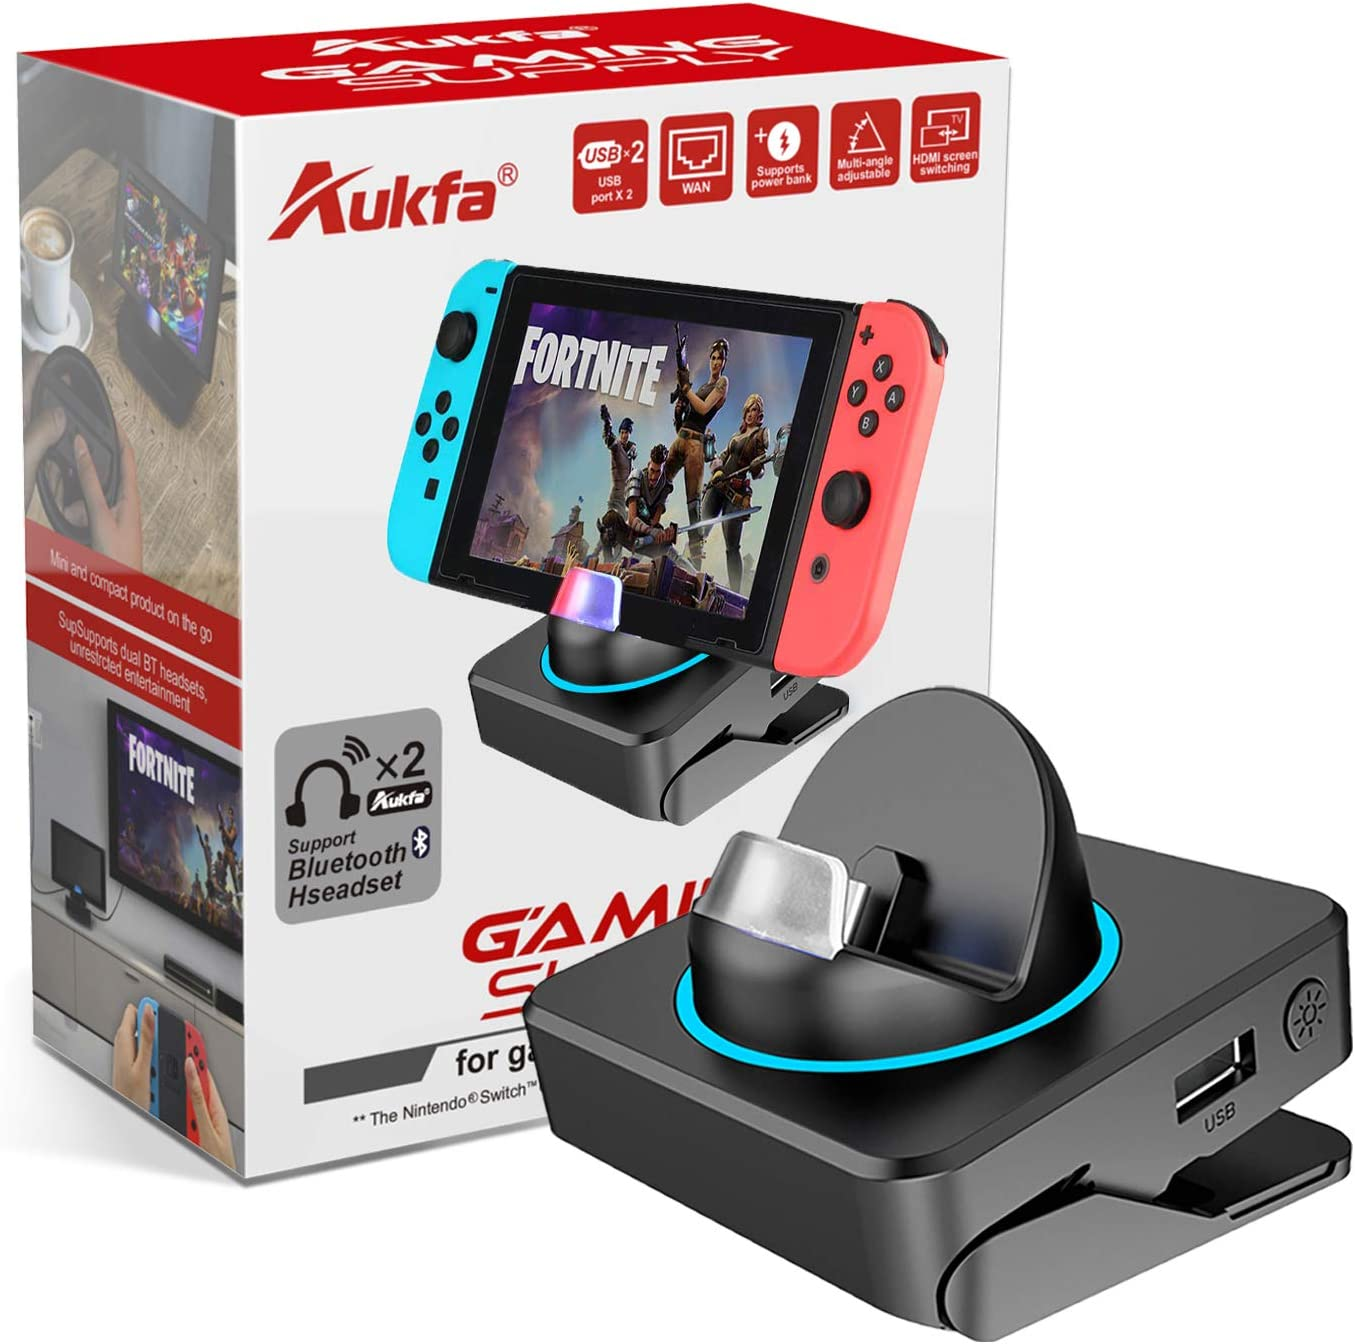 Bluetooth Switch Dock for Nintendo,Aukfa Adjustable Switch TV Dock Station,Type-C Input Interface 4K HDMI Video Conversion LAN and USB 3.0 Port, Connect Two Headsets Same Time Compatible with Airpods